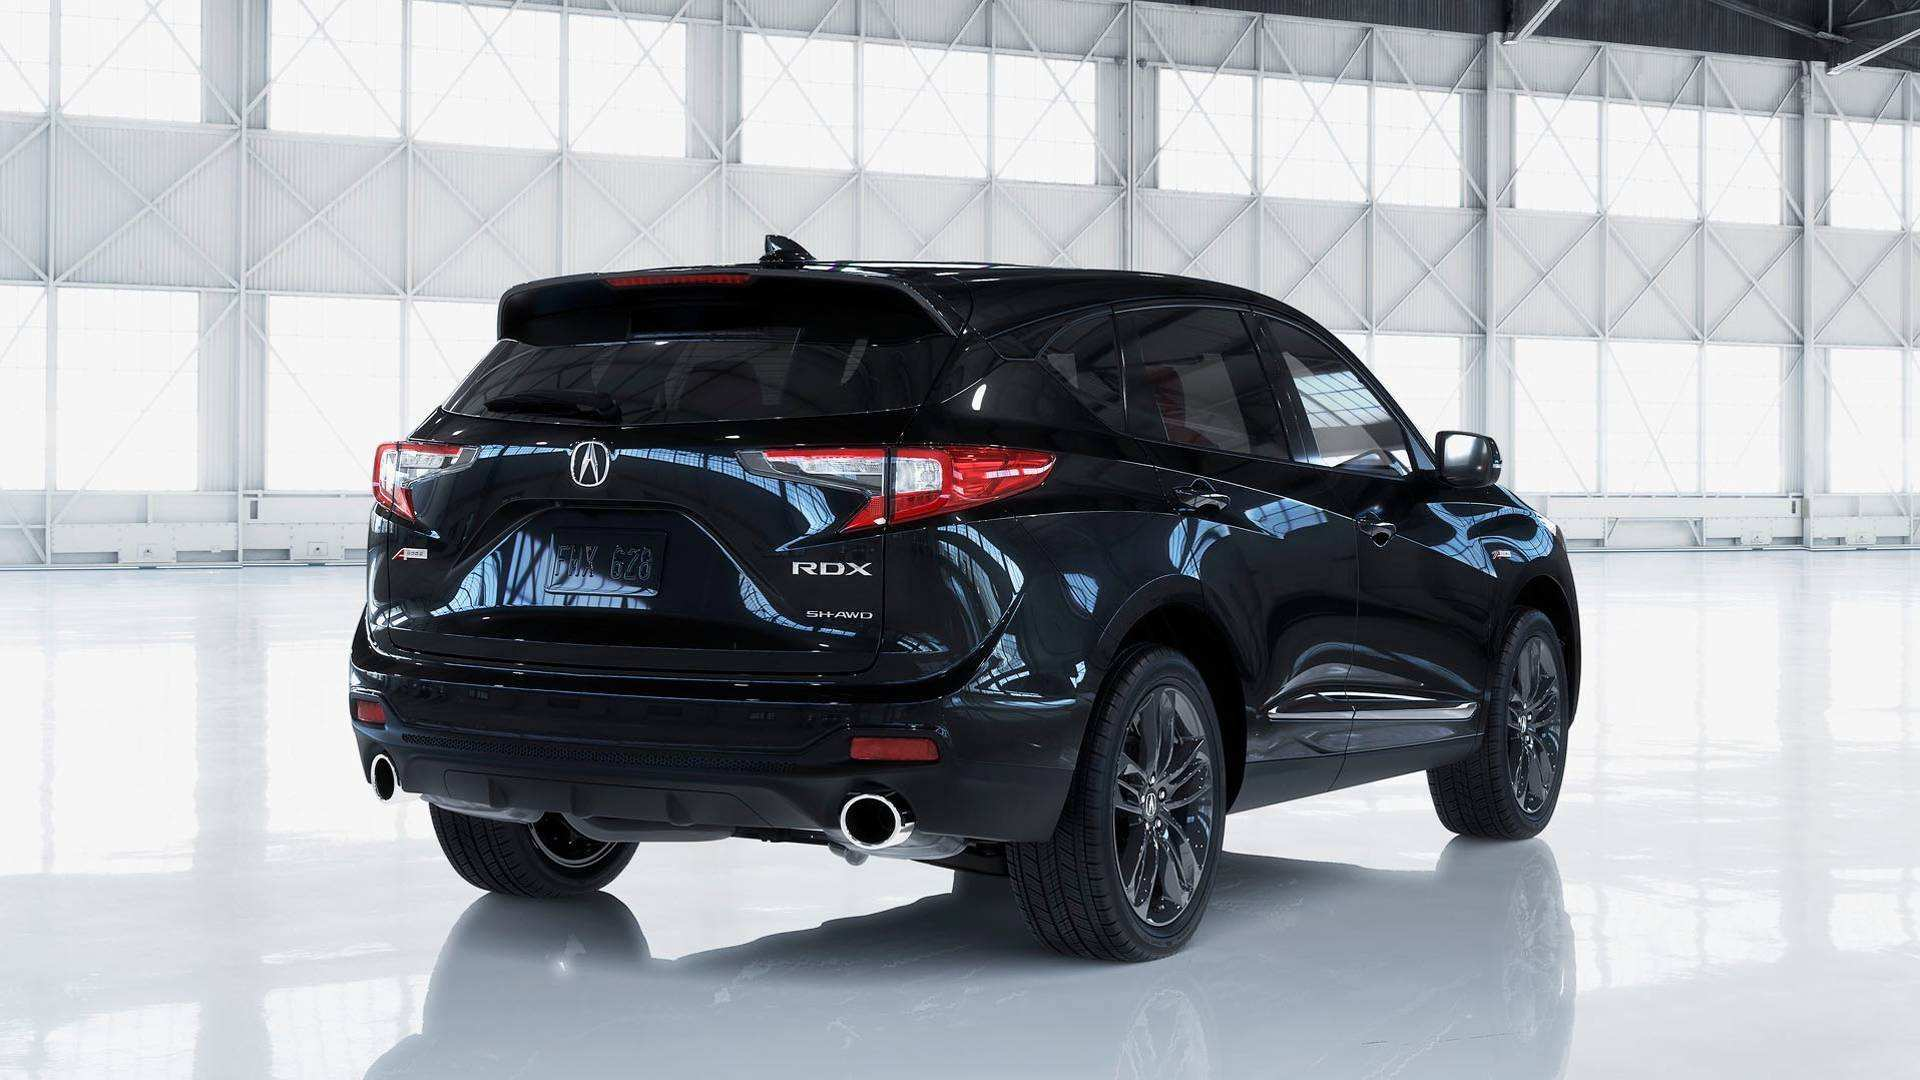 65 All New 2020 Acura Rdx Exterior Colors Style